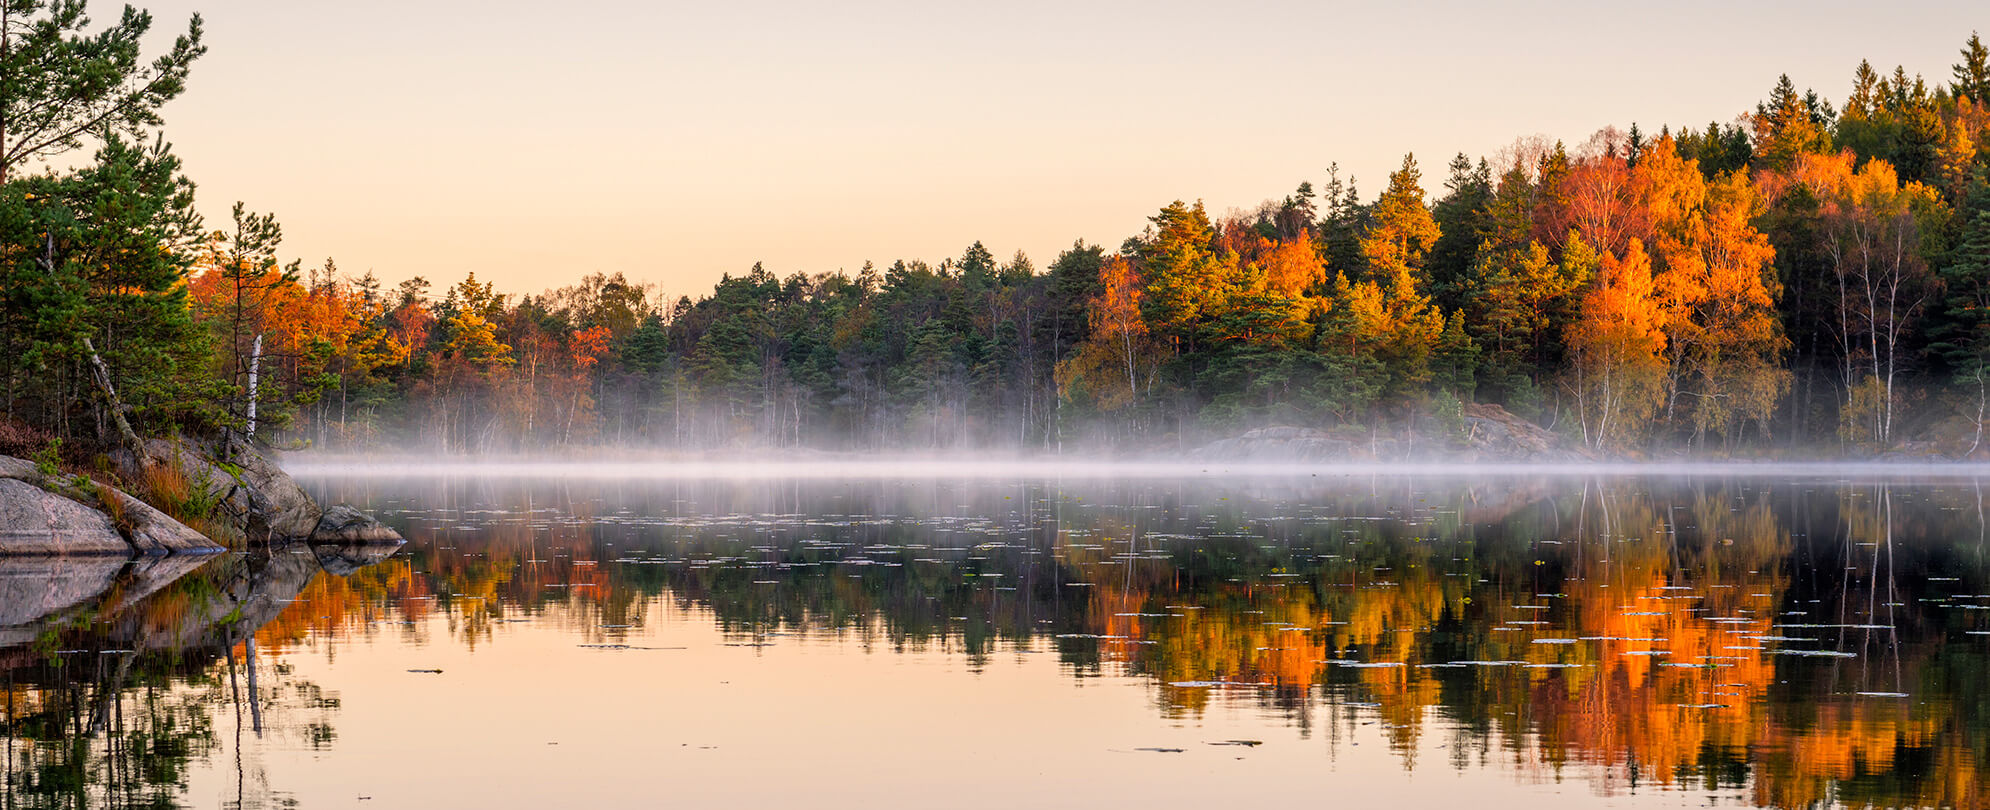 Fog covered lake surrounded by an autumn forrest